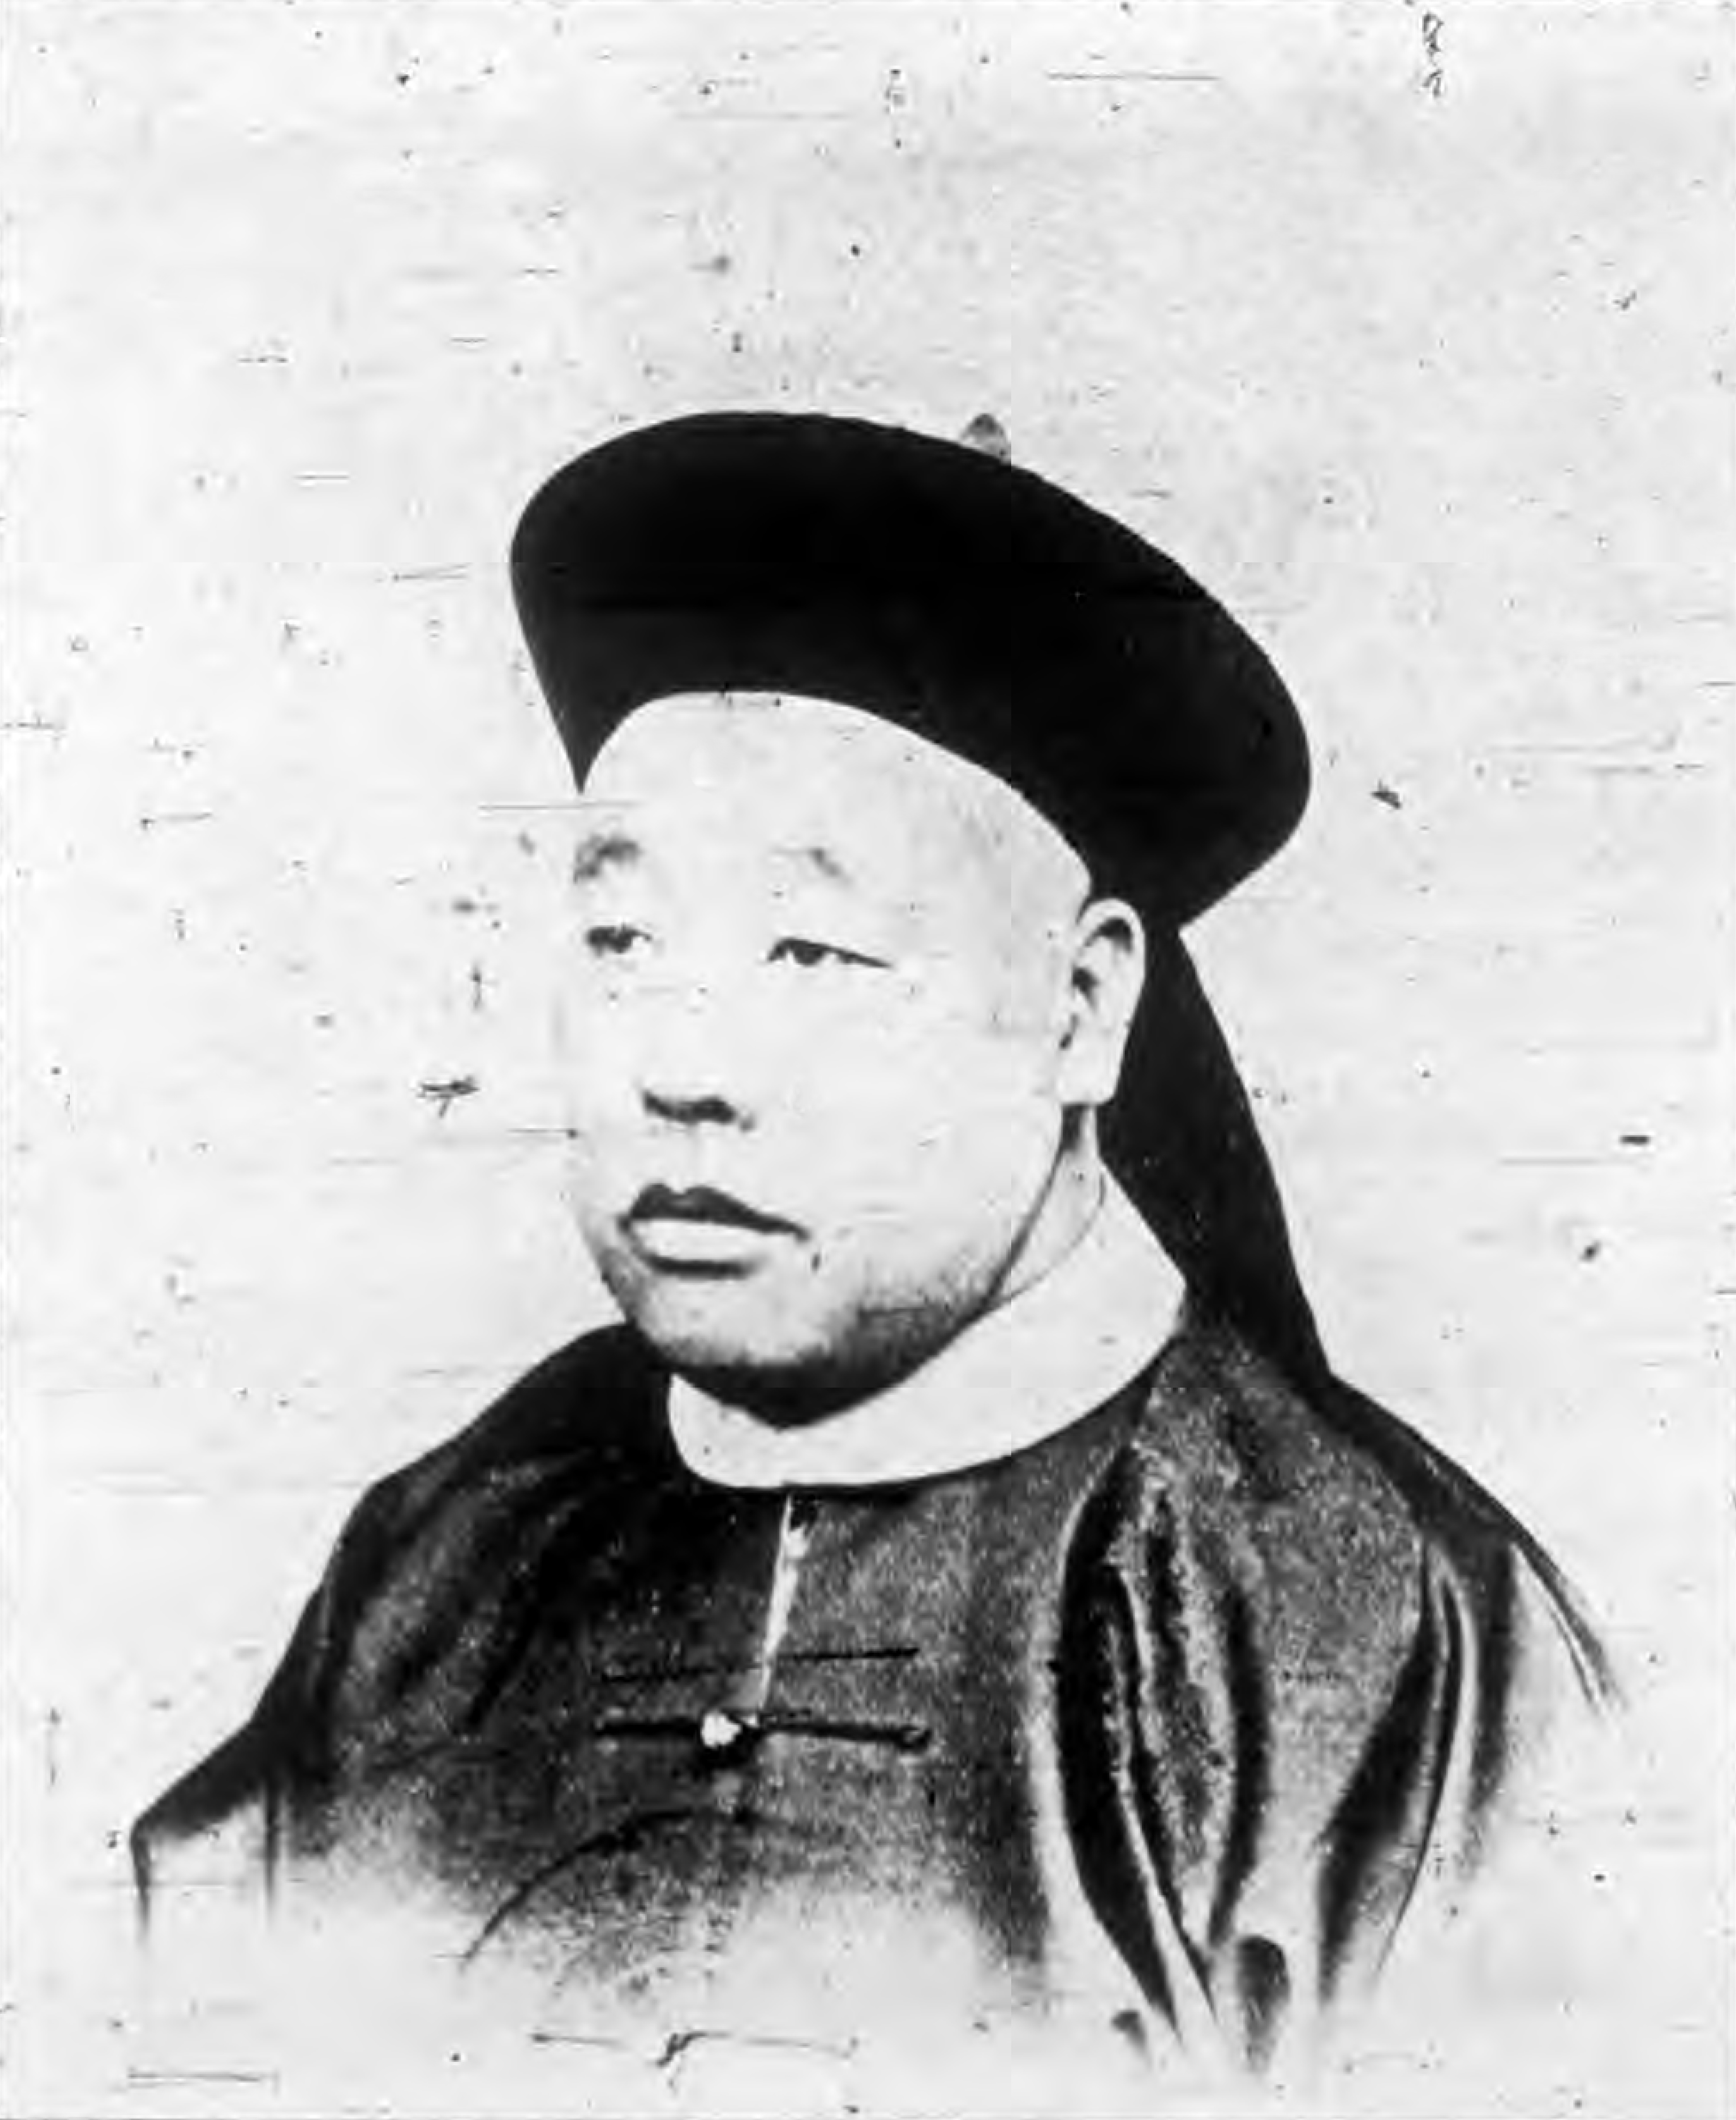 File:Tie liang,Bordered White Banner Manchu people jpg